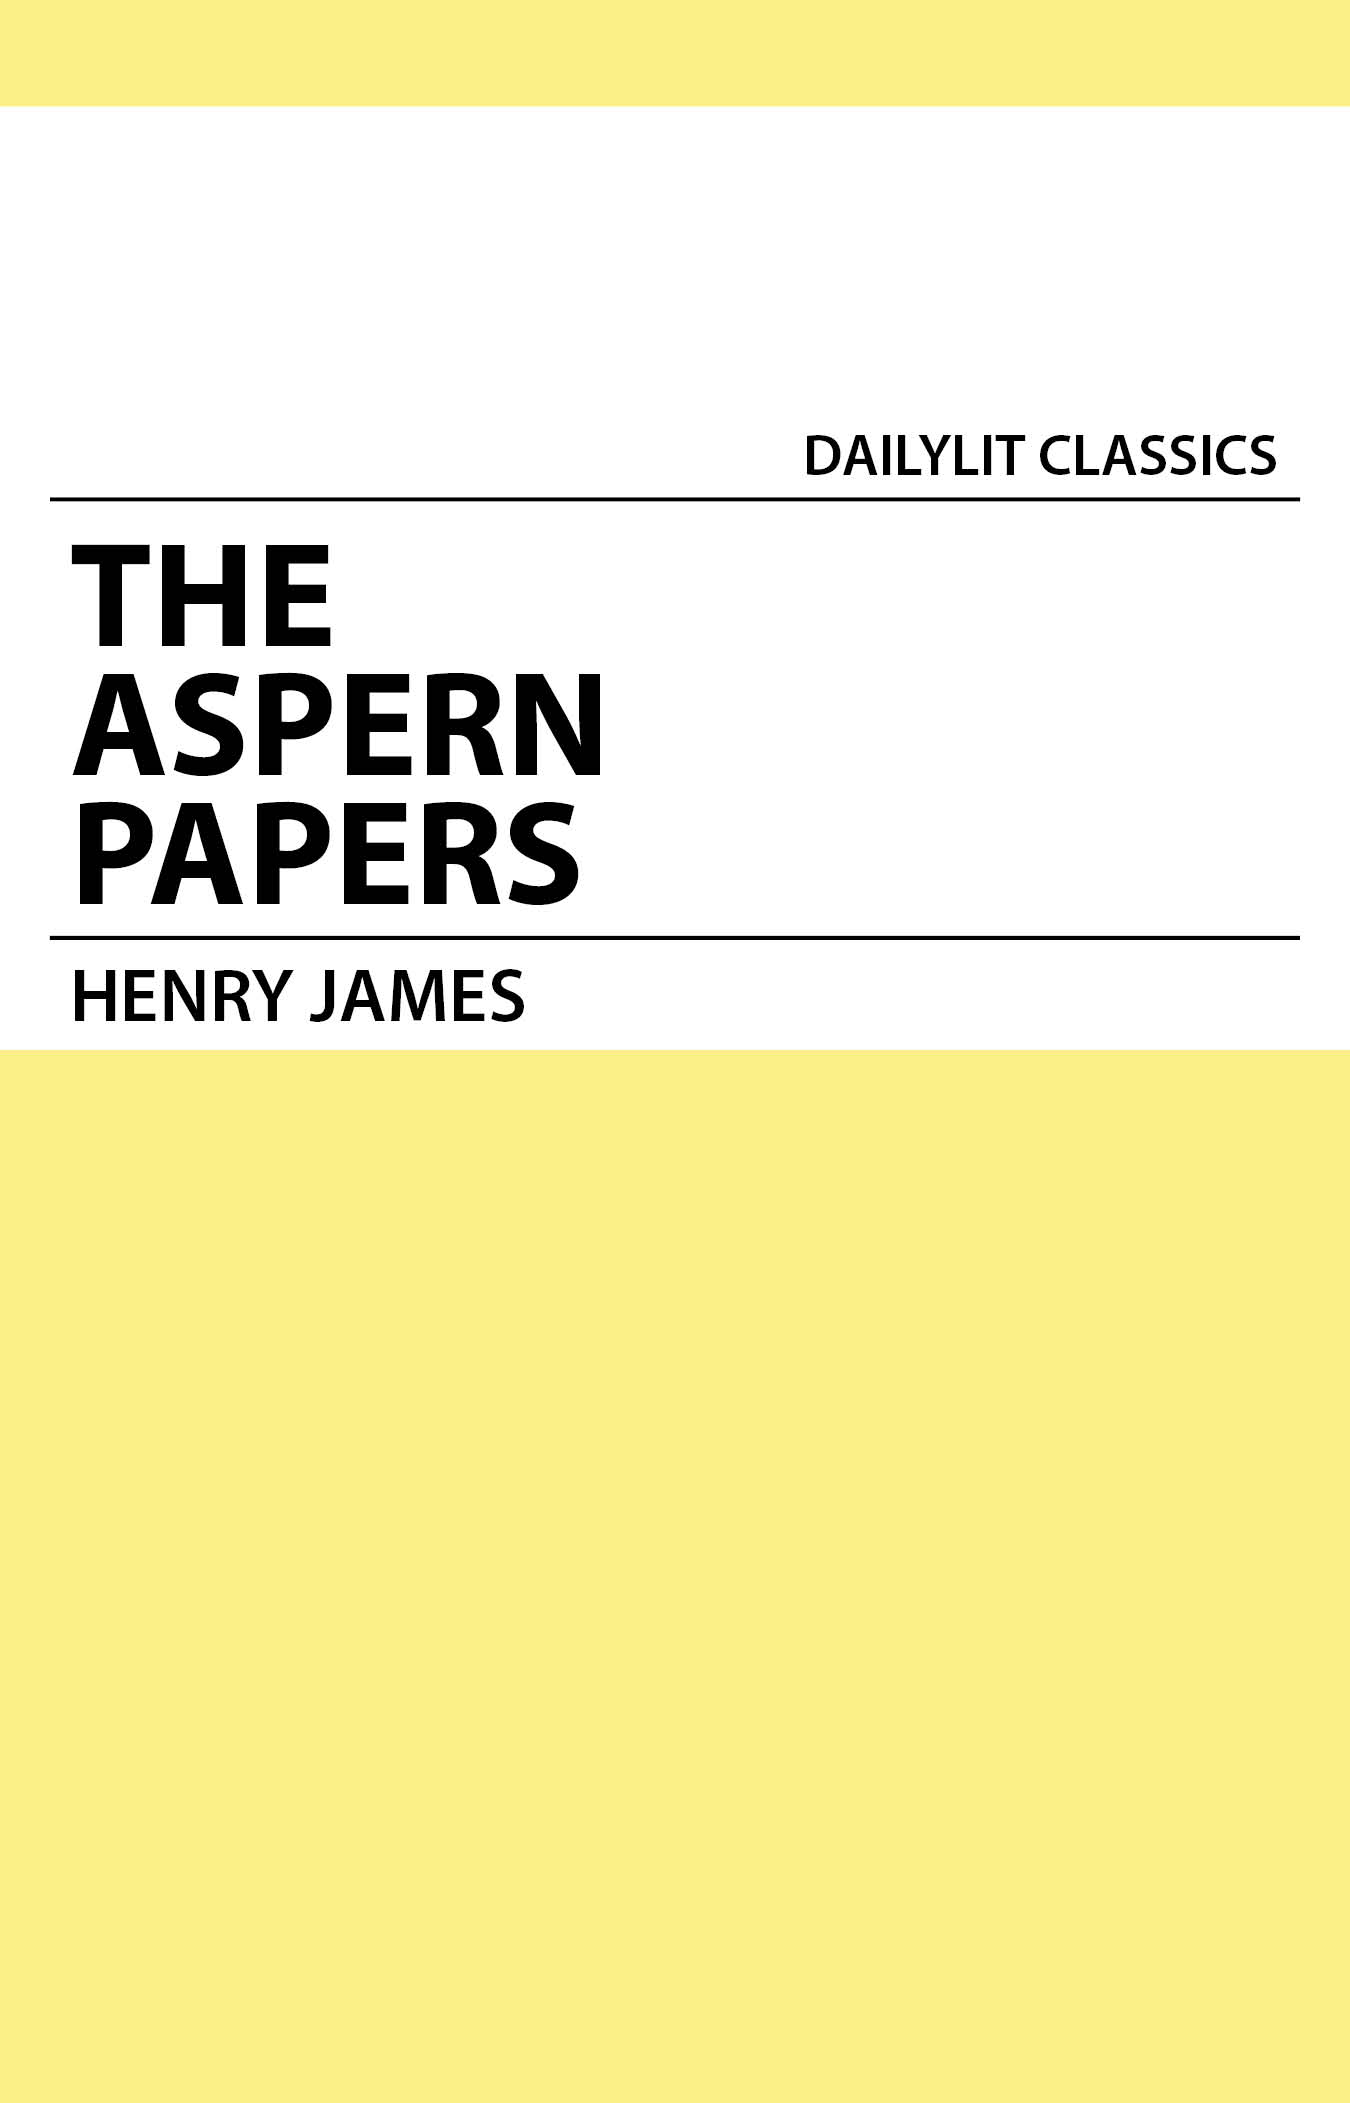 henry james the aspern papers The aspern papers - more a novella than short story - was published in 1888, soon after louisa pallant, which i wrote about here and again here recently it therefore seemed logical to tackle this one next, but i very nearly didn't write about it — it just didn't at first satisfy as much as the others i've.